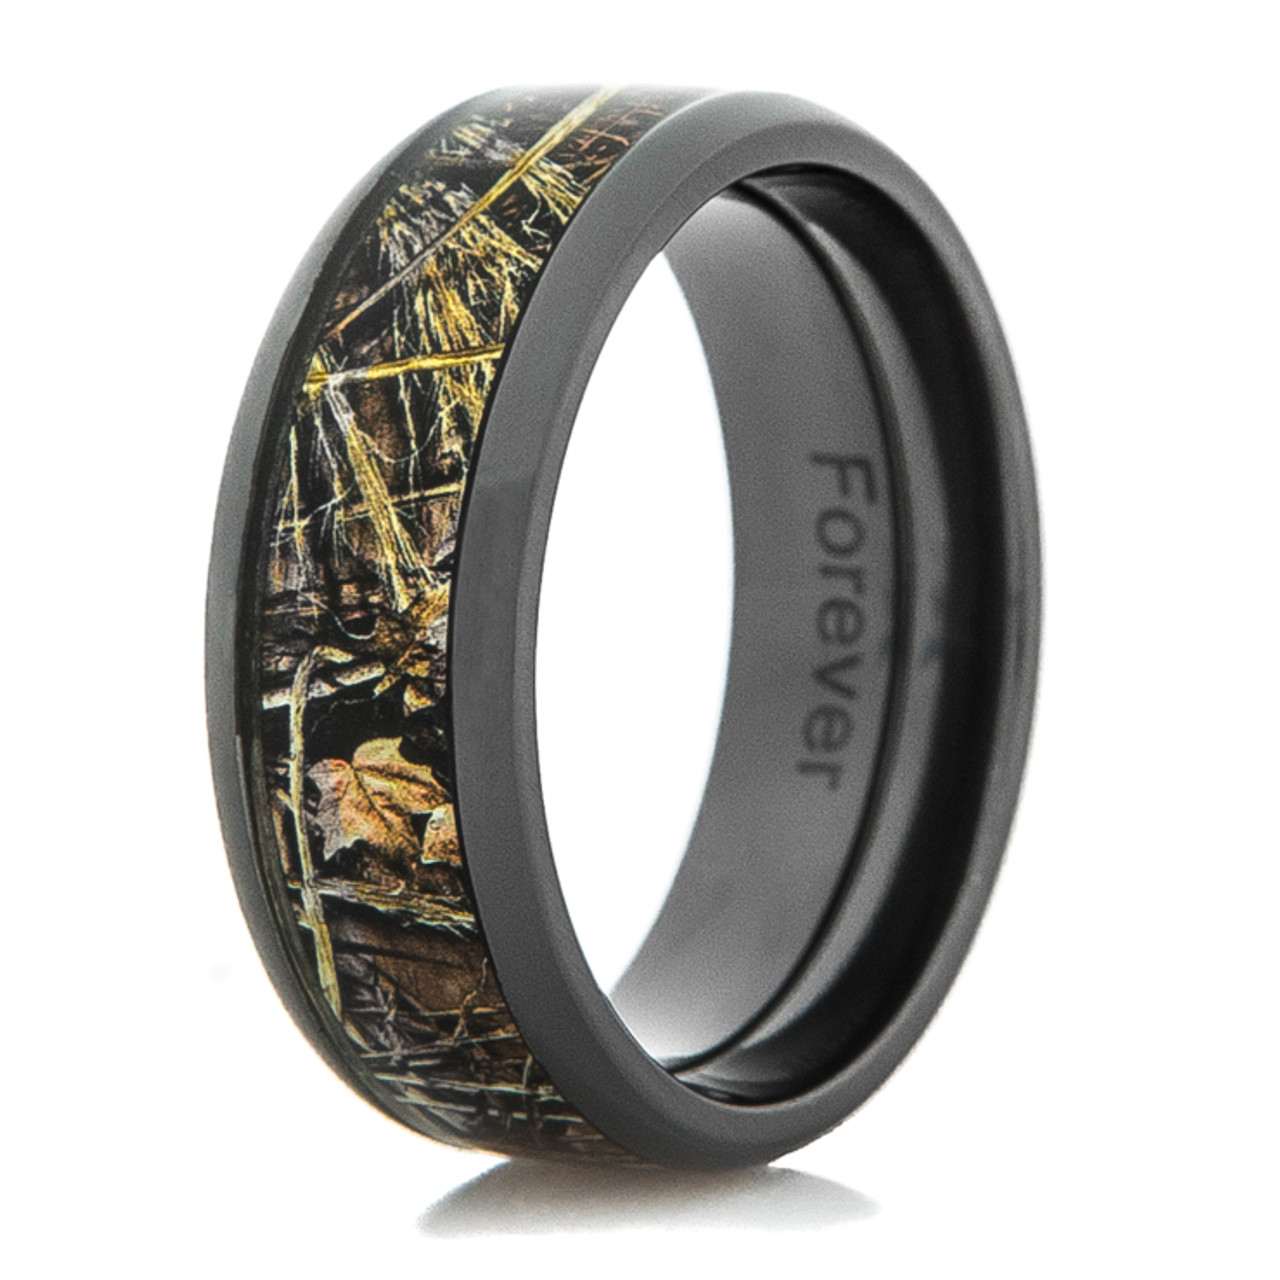 her camo for and mens image sets camouflage decoration wedding size of fresh rings inspiring ring design bands full sexy ringts him with